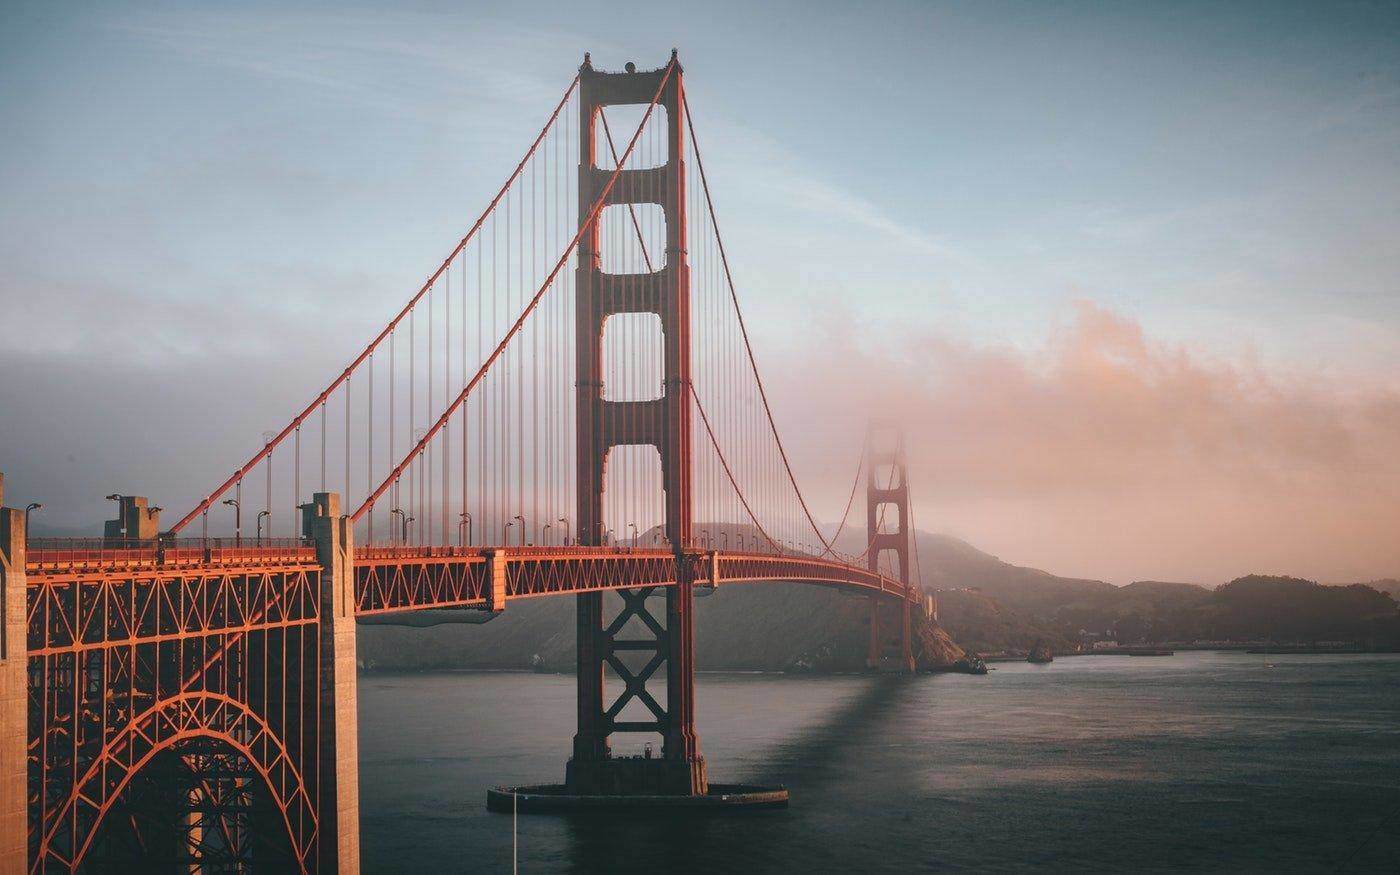 golden gate bridge - 20 best things to see and do around the world